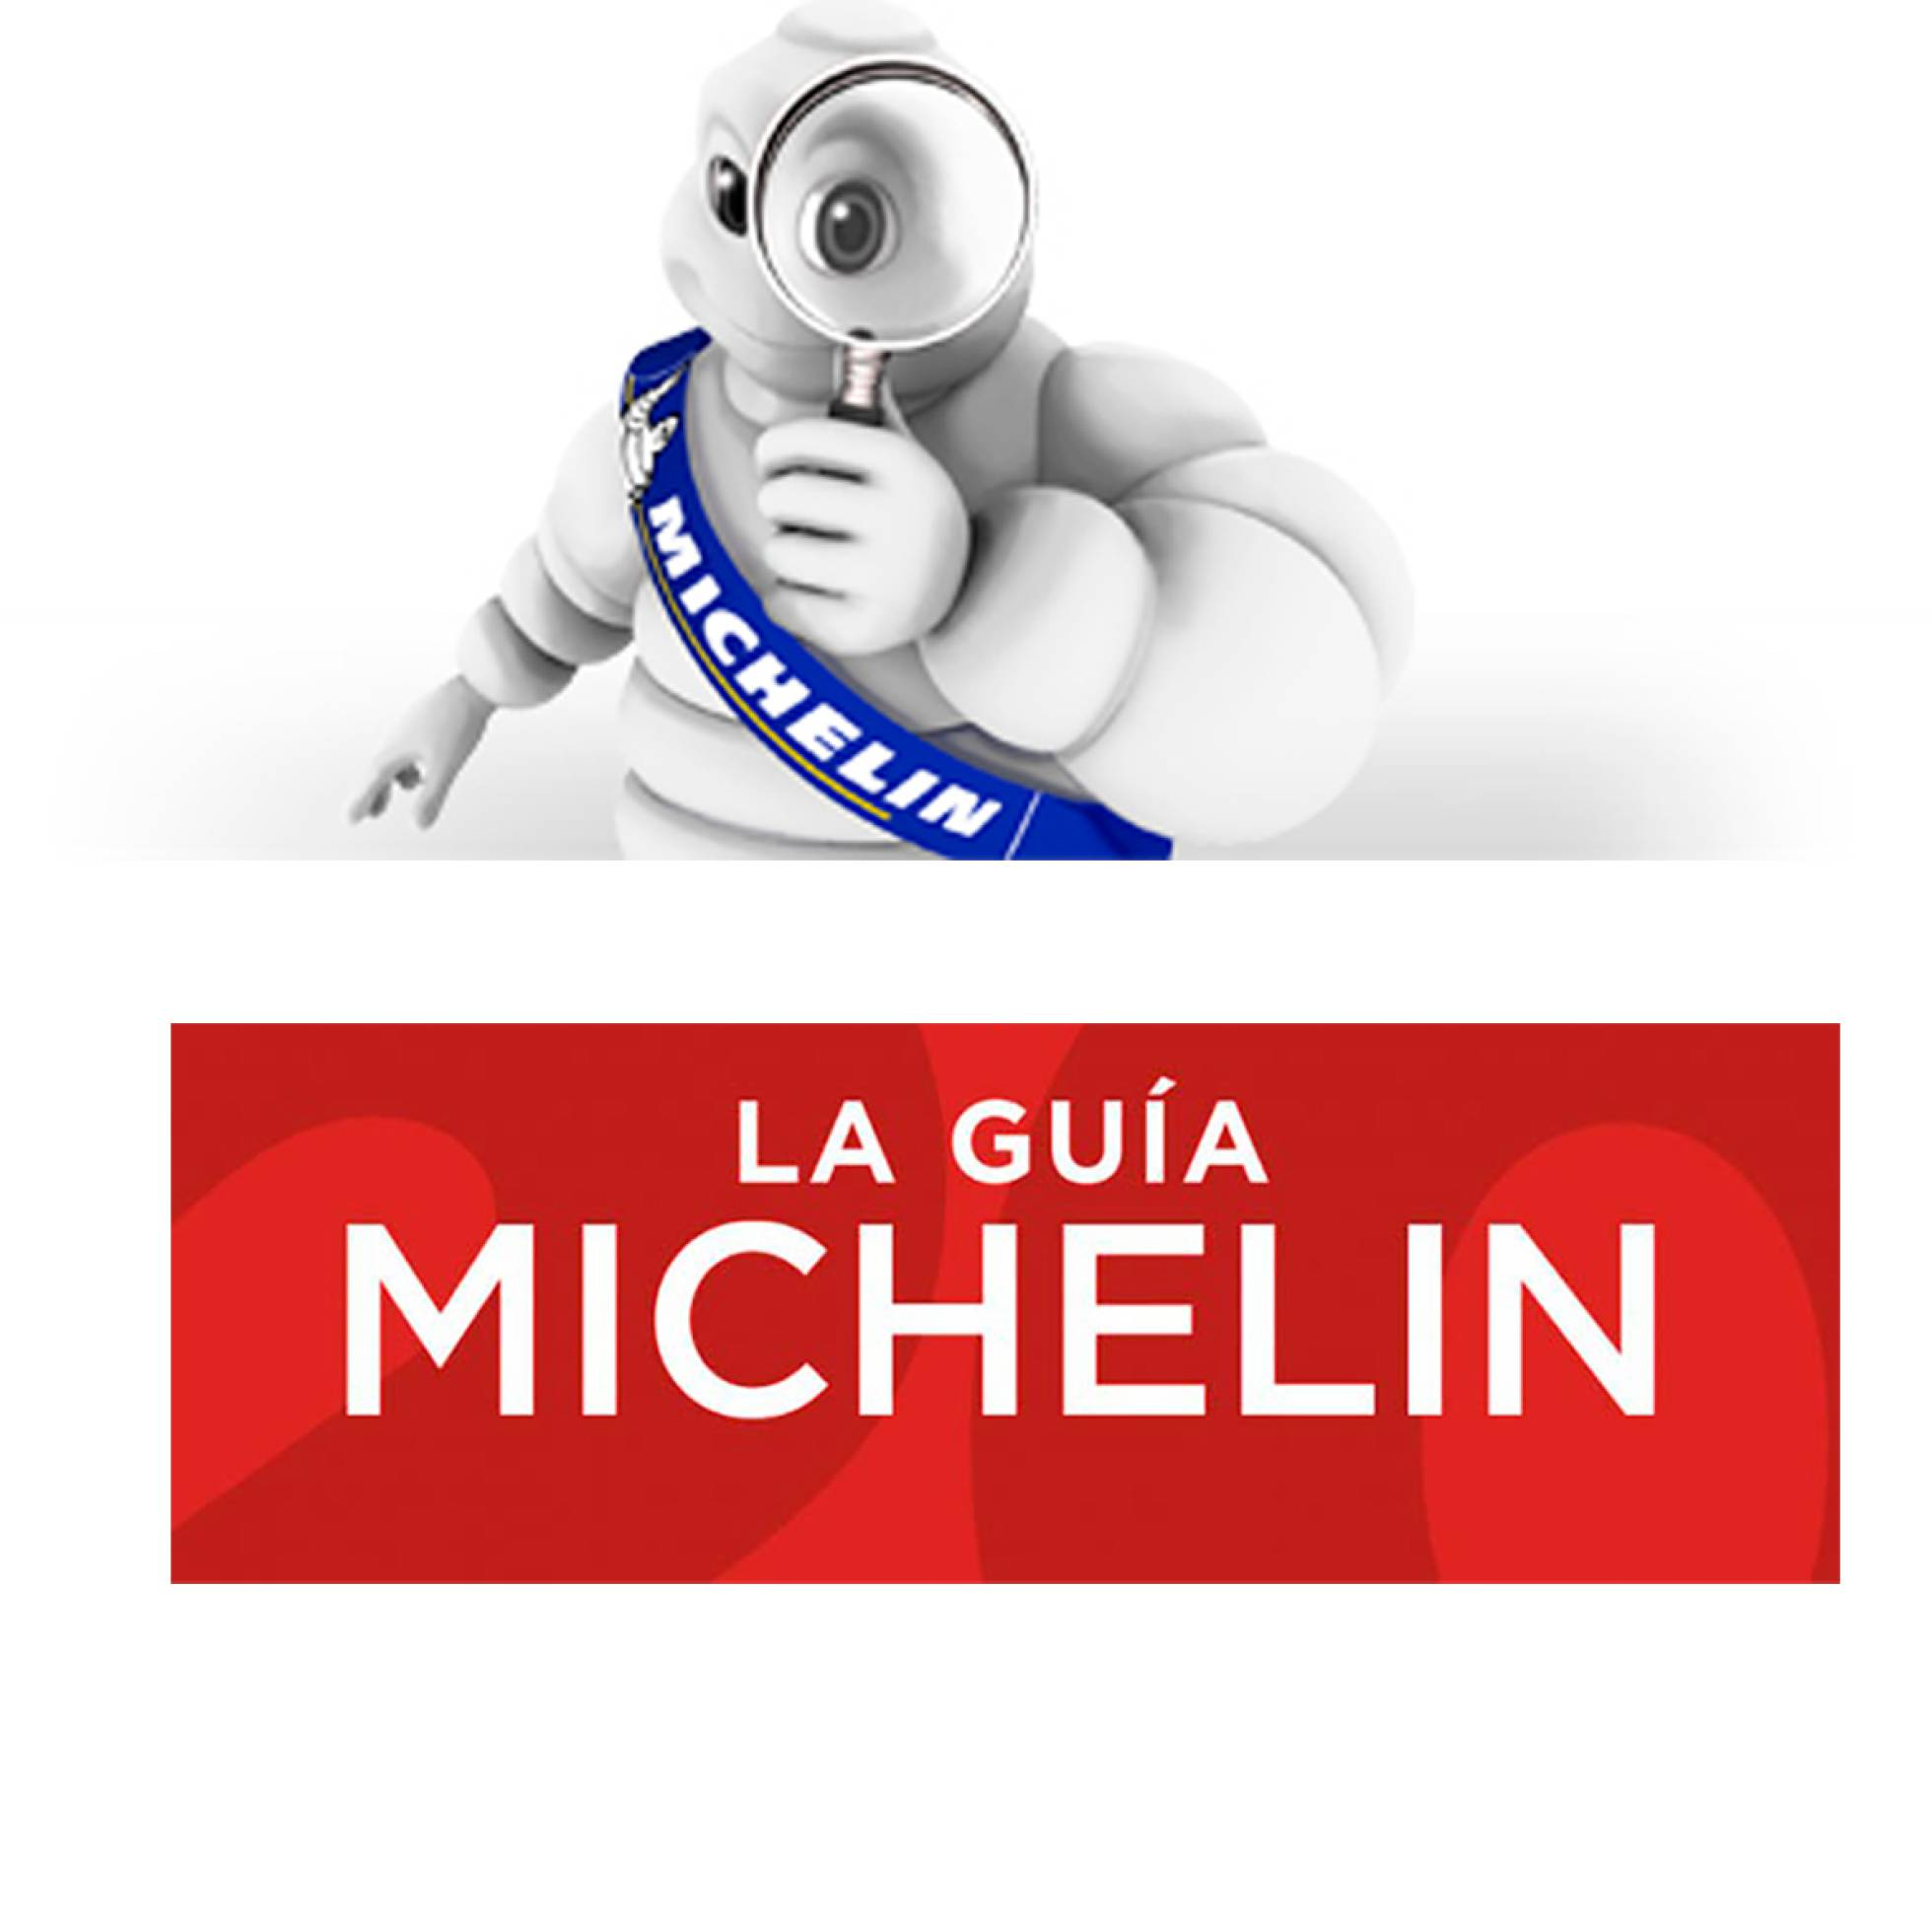 Michelin, Guia Michelin,